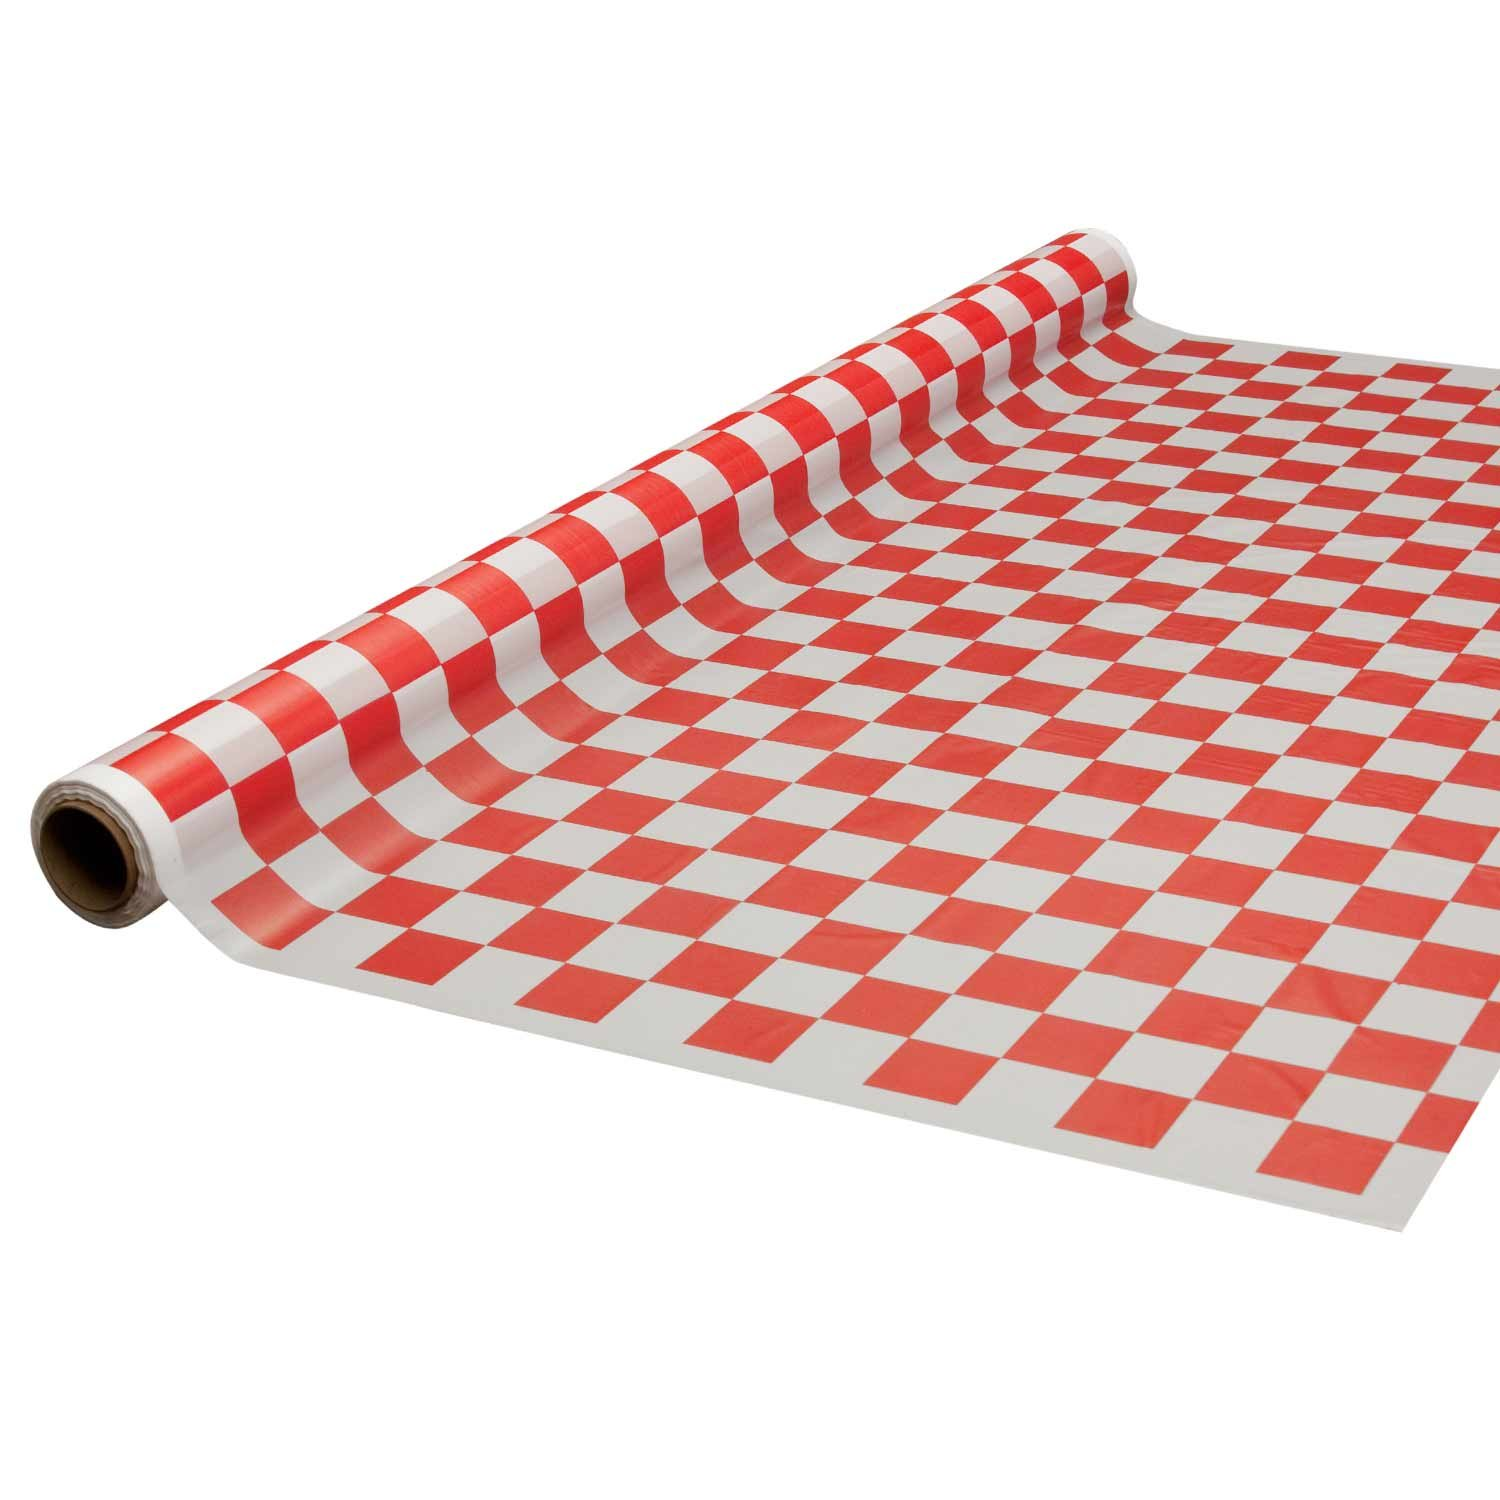 Party Essentials Printed Plastic Banquet Table Roll Available in 27 Colors, 40'' x 100', Red and White Checks